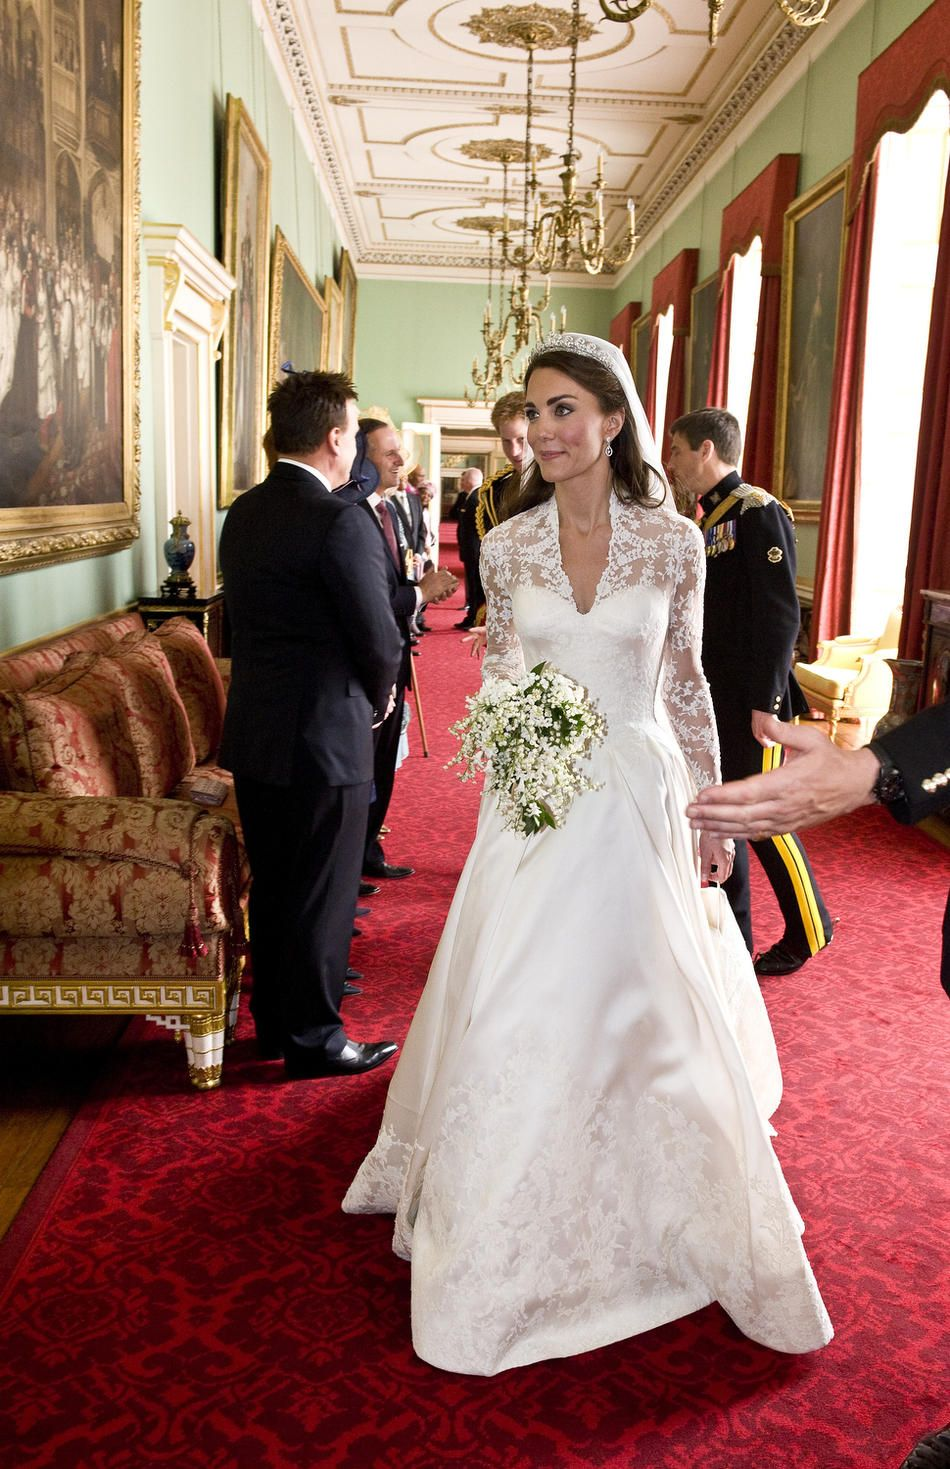 kate middleton who has been given the title the duchess of cambridge arrive to meet gove kate middleton wedding dress kate middleton wedding middleton wedding kate middleton wedding dress